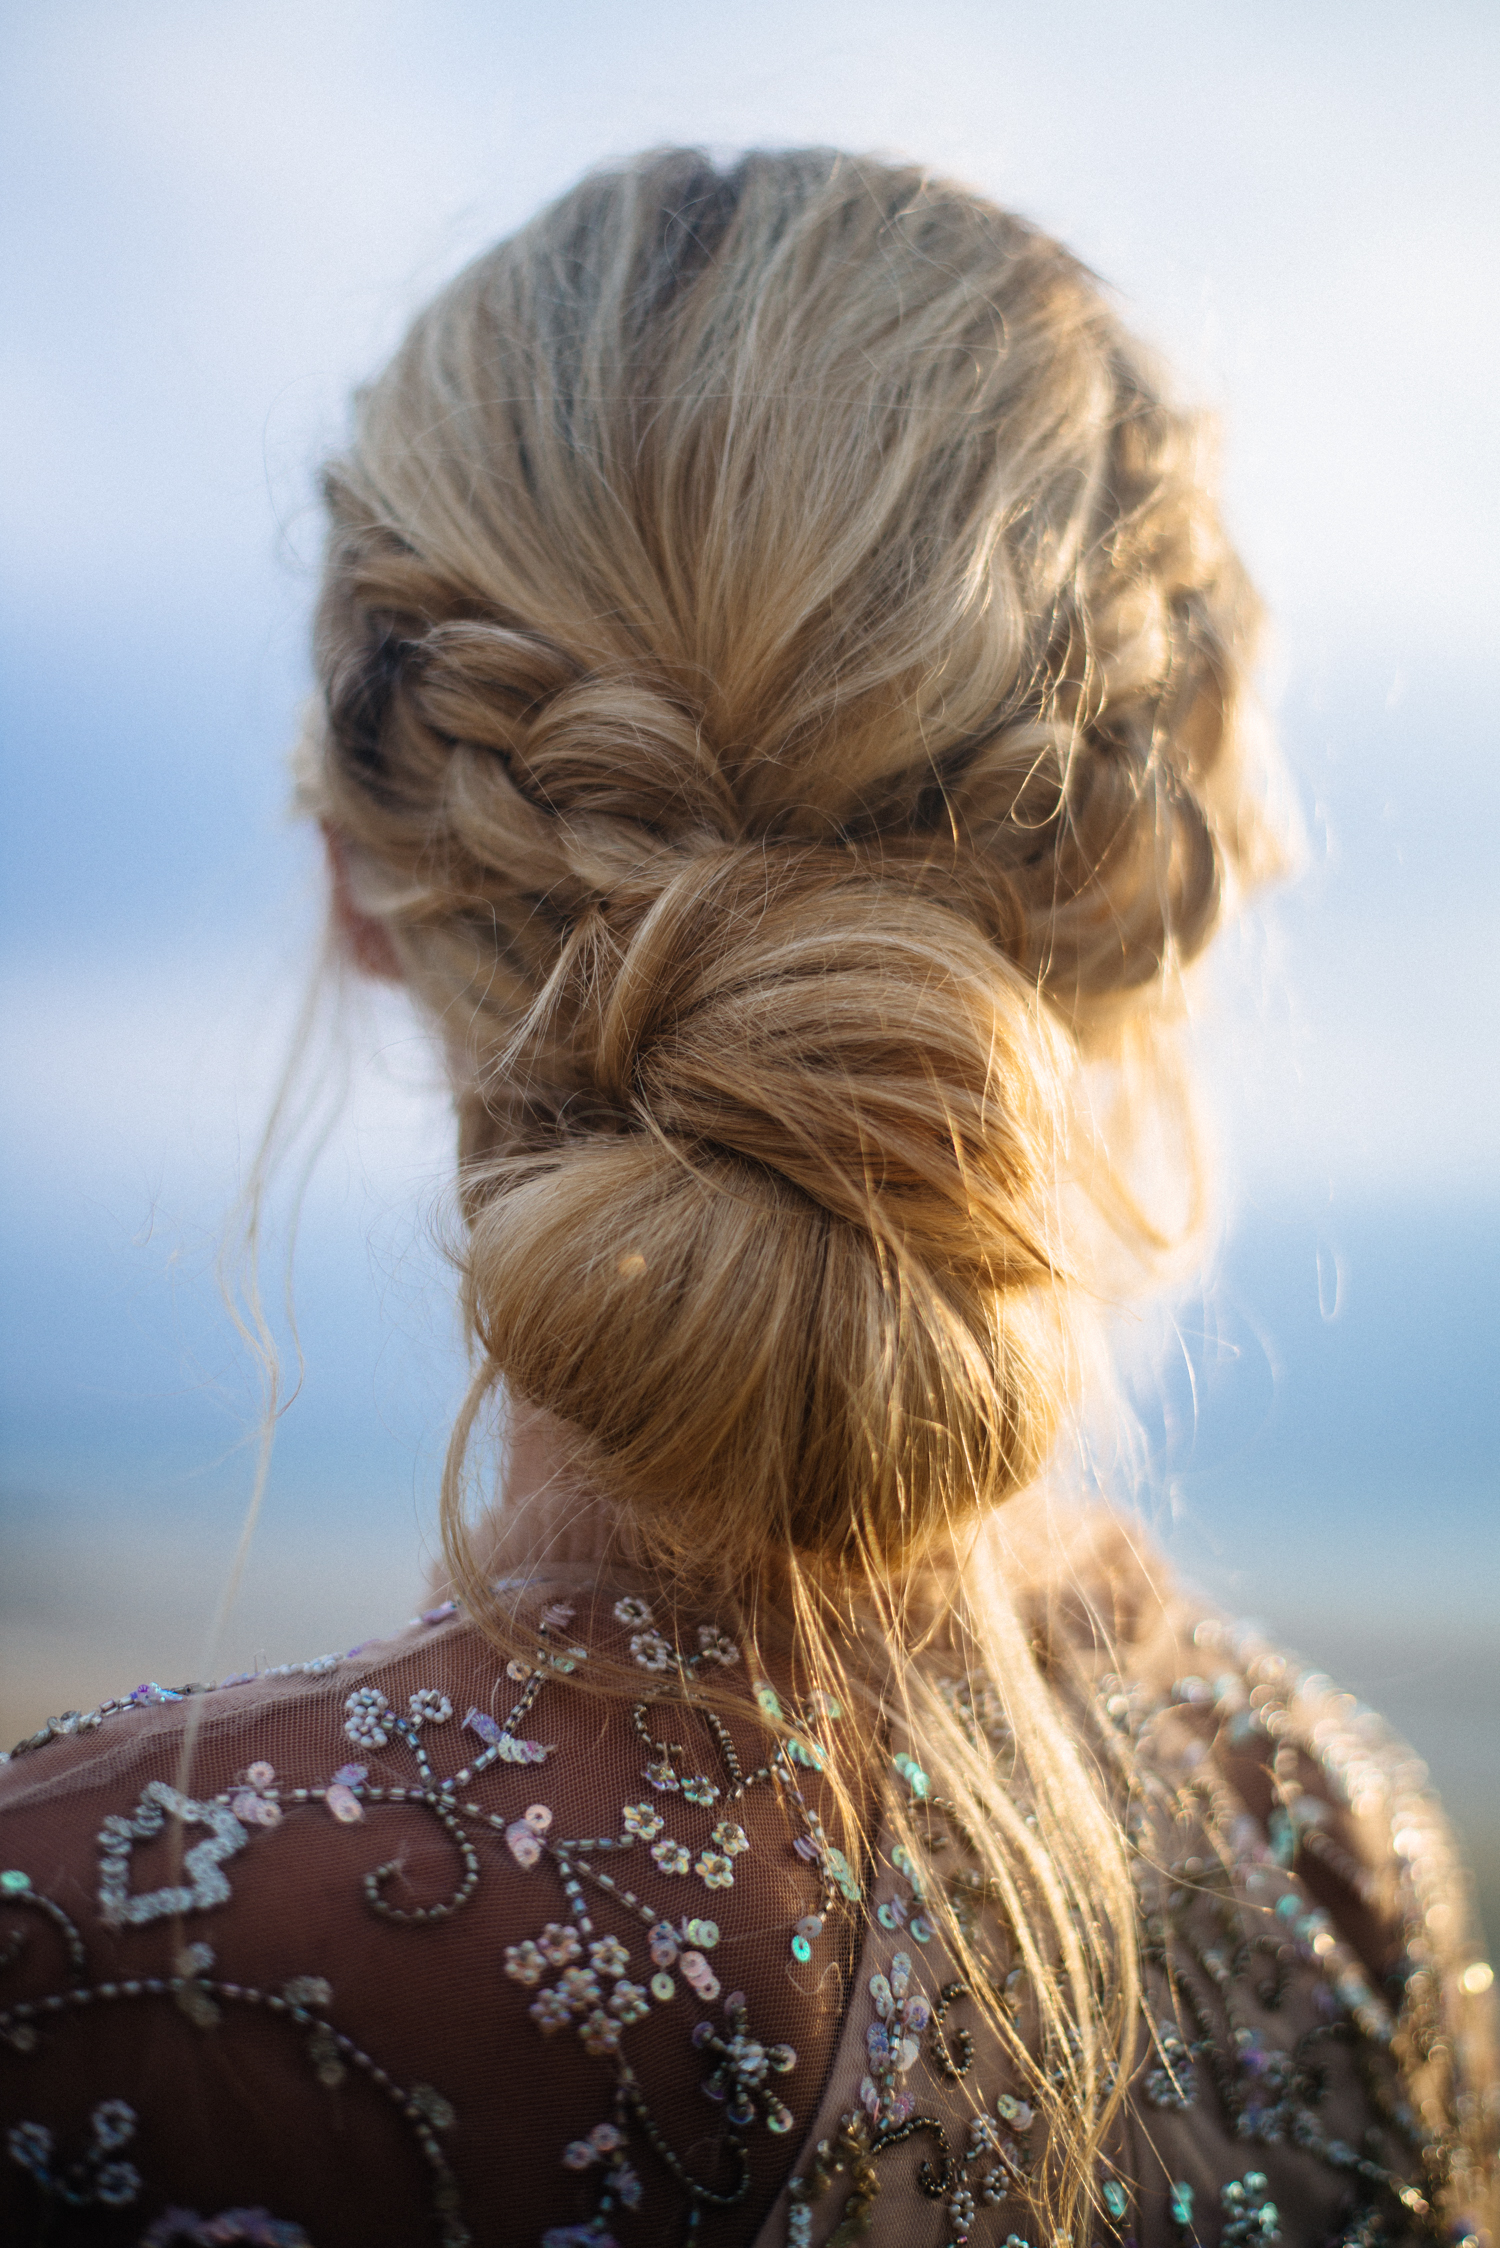 Cornwall wedding hair